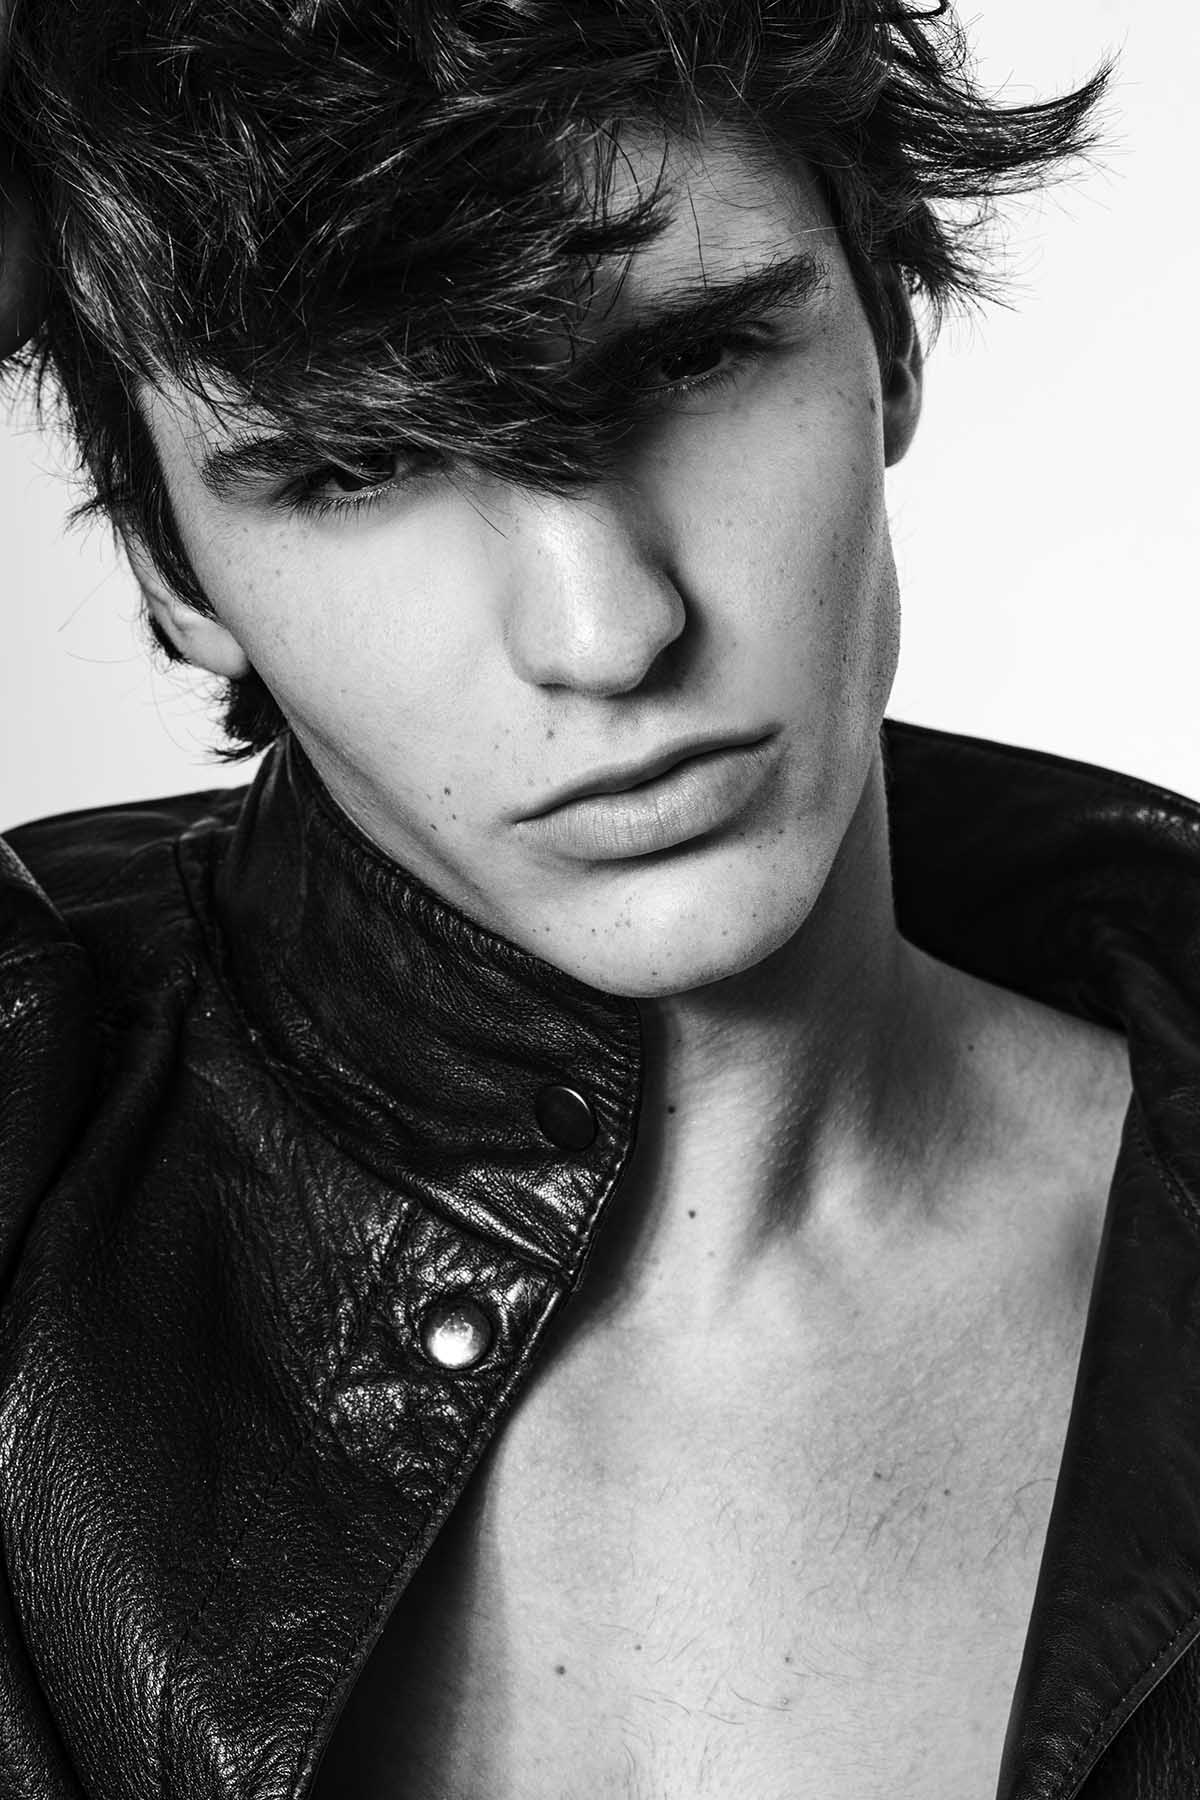 Theo Bove by Leandro Ramos for Brazilian Male Model